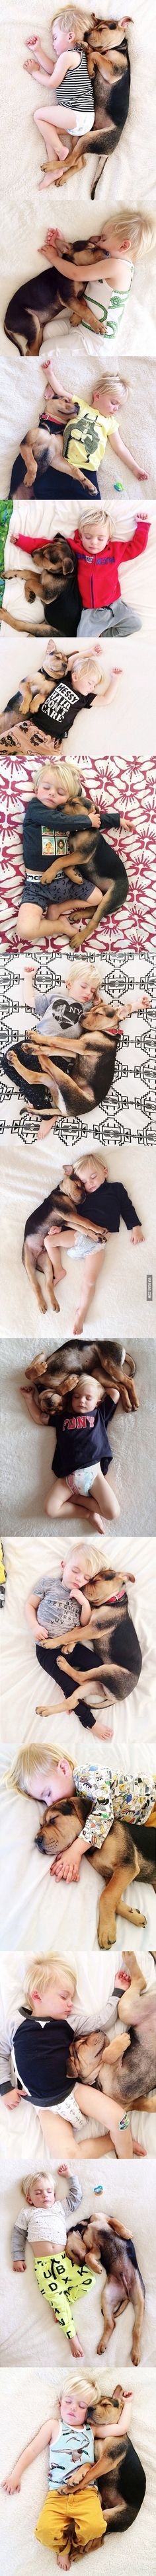 A mother photographs her son and his puppy taking a nap everyday. I would love to see more pictures of this cute boy and his dog as they grow together. Love!